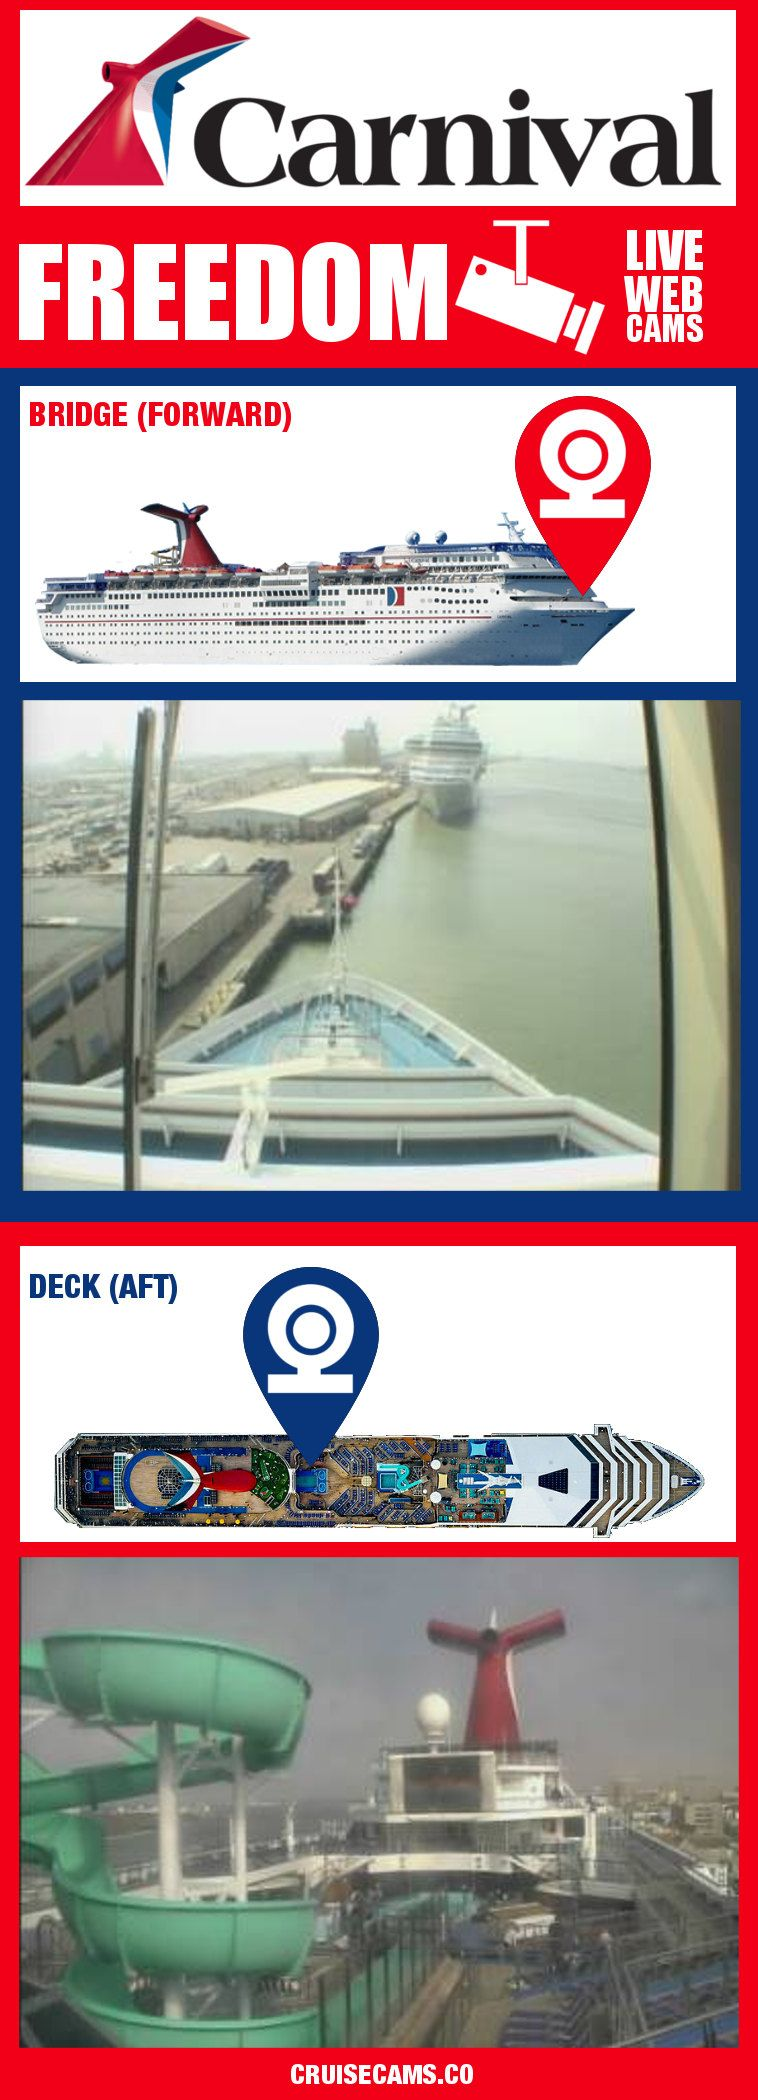 Carnival Freedom Cruise Cam Live Ship Webcam Click For Latest - Live cruise ship web cameras